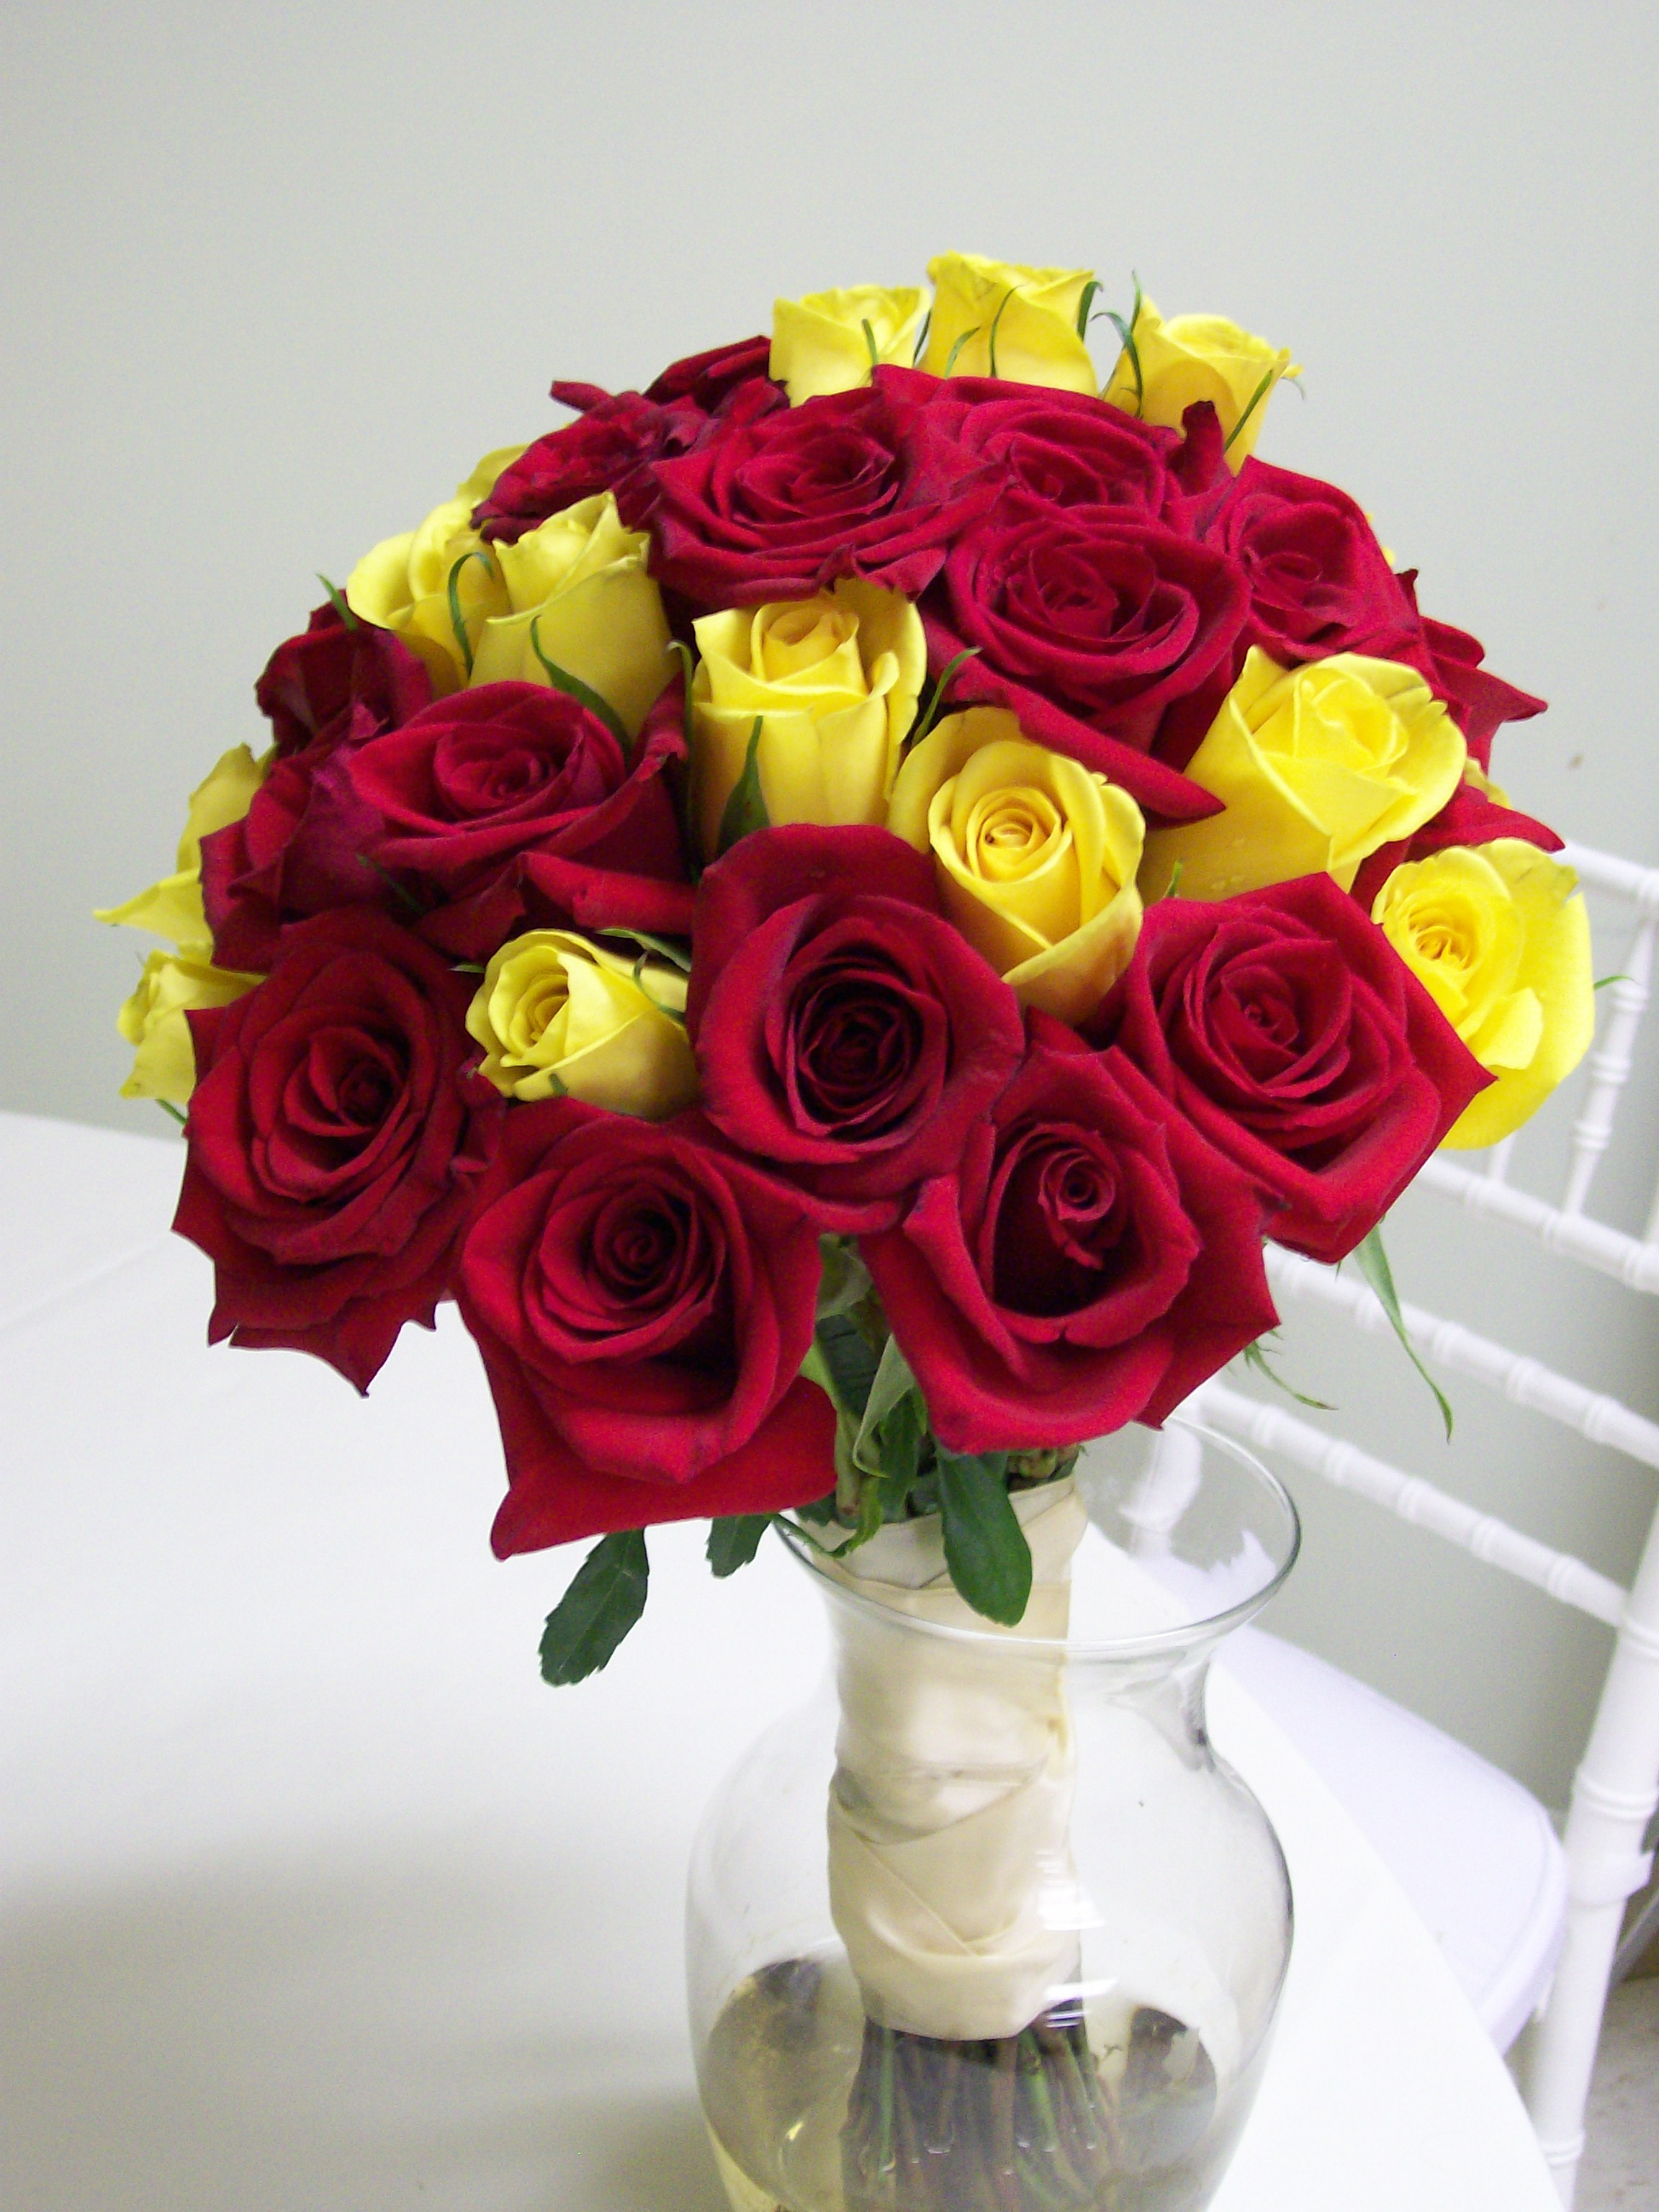 Red and yellow flower arrangements new house designs red and yellow flower arrangements choice image decoration mightylinksfo